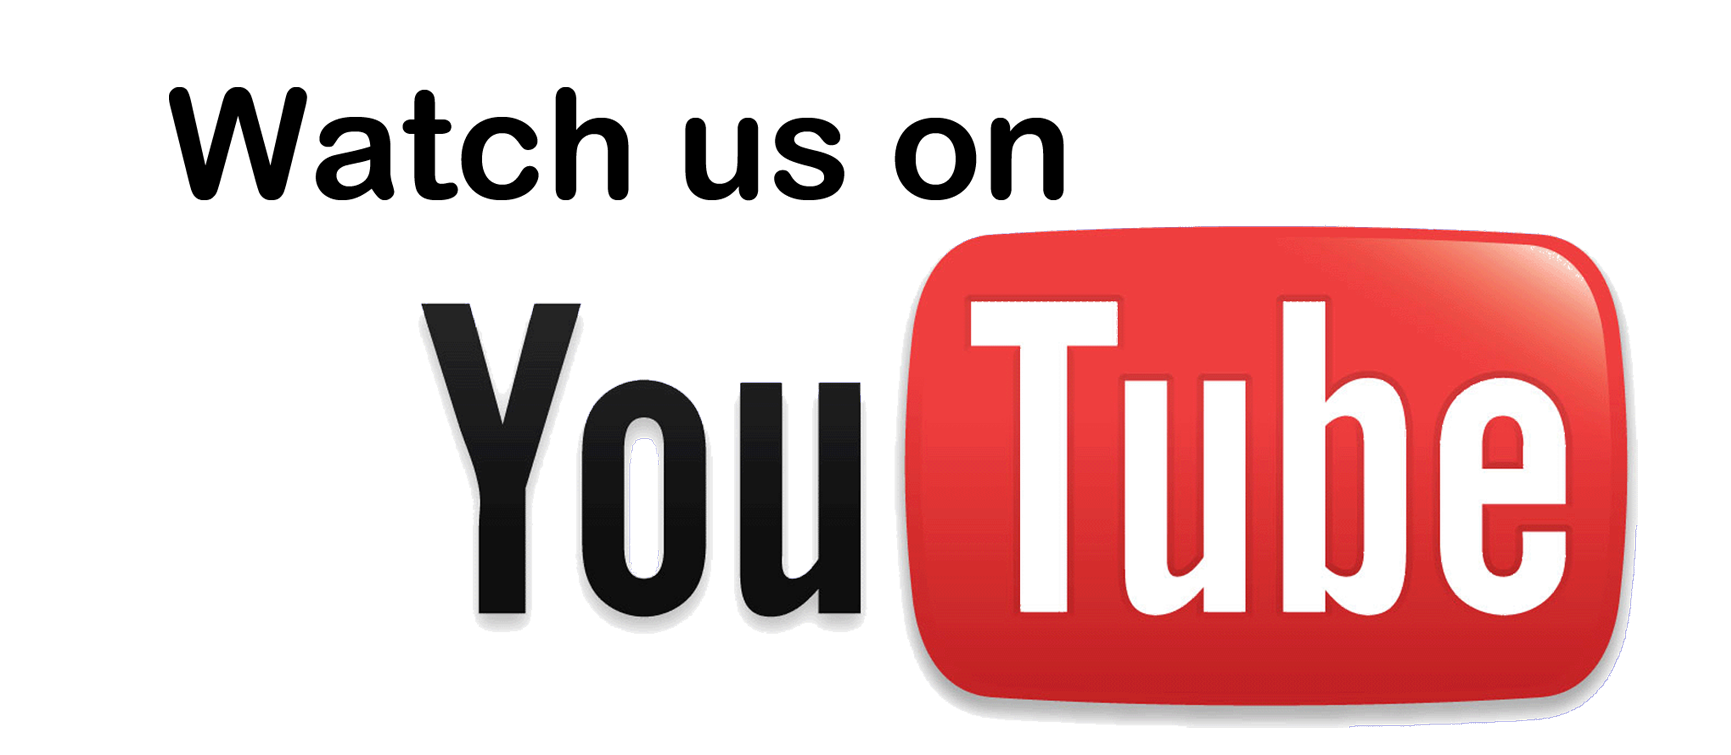 Youtube logo png transparent background. Famous logos watchusonyoutubelogopng